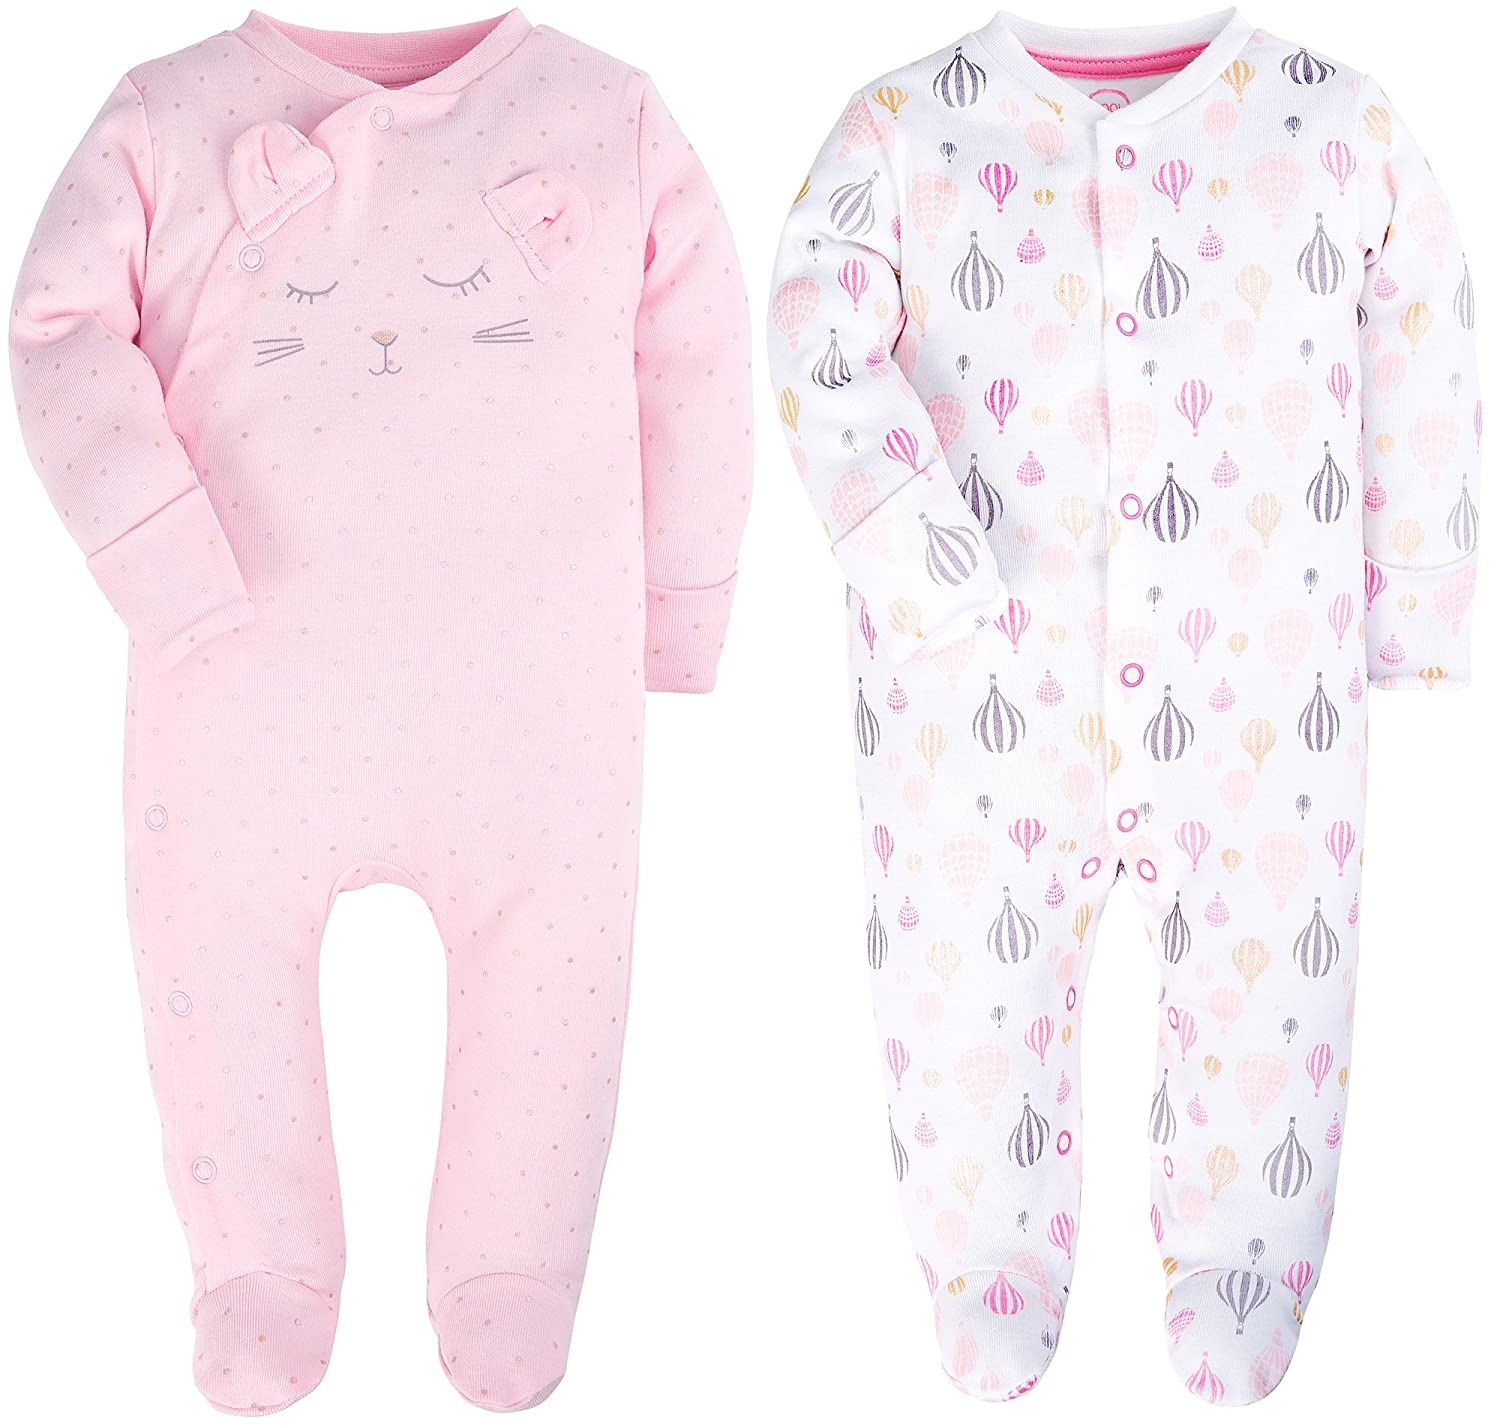 【メール便無料】 ShengHai Footed SHIRT ベビーガールズ B079L69WPZ With Cuffs, Mitten Cuffs, Footed Mitten Pajamas 6 - 9 Months, 植田蚊帳カーテン蚊帳工場直売:1f3da216 --- ciadaterra.com